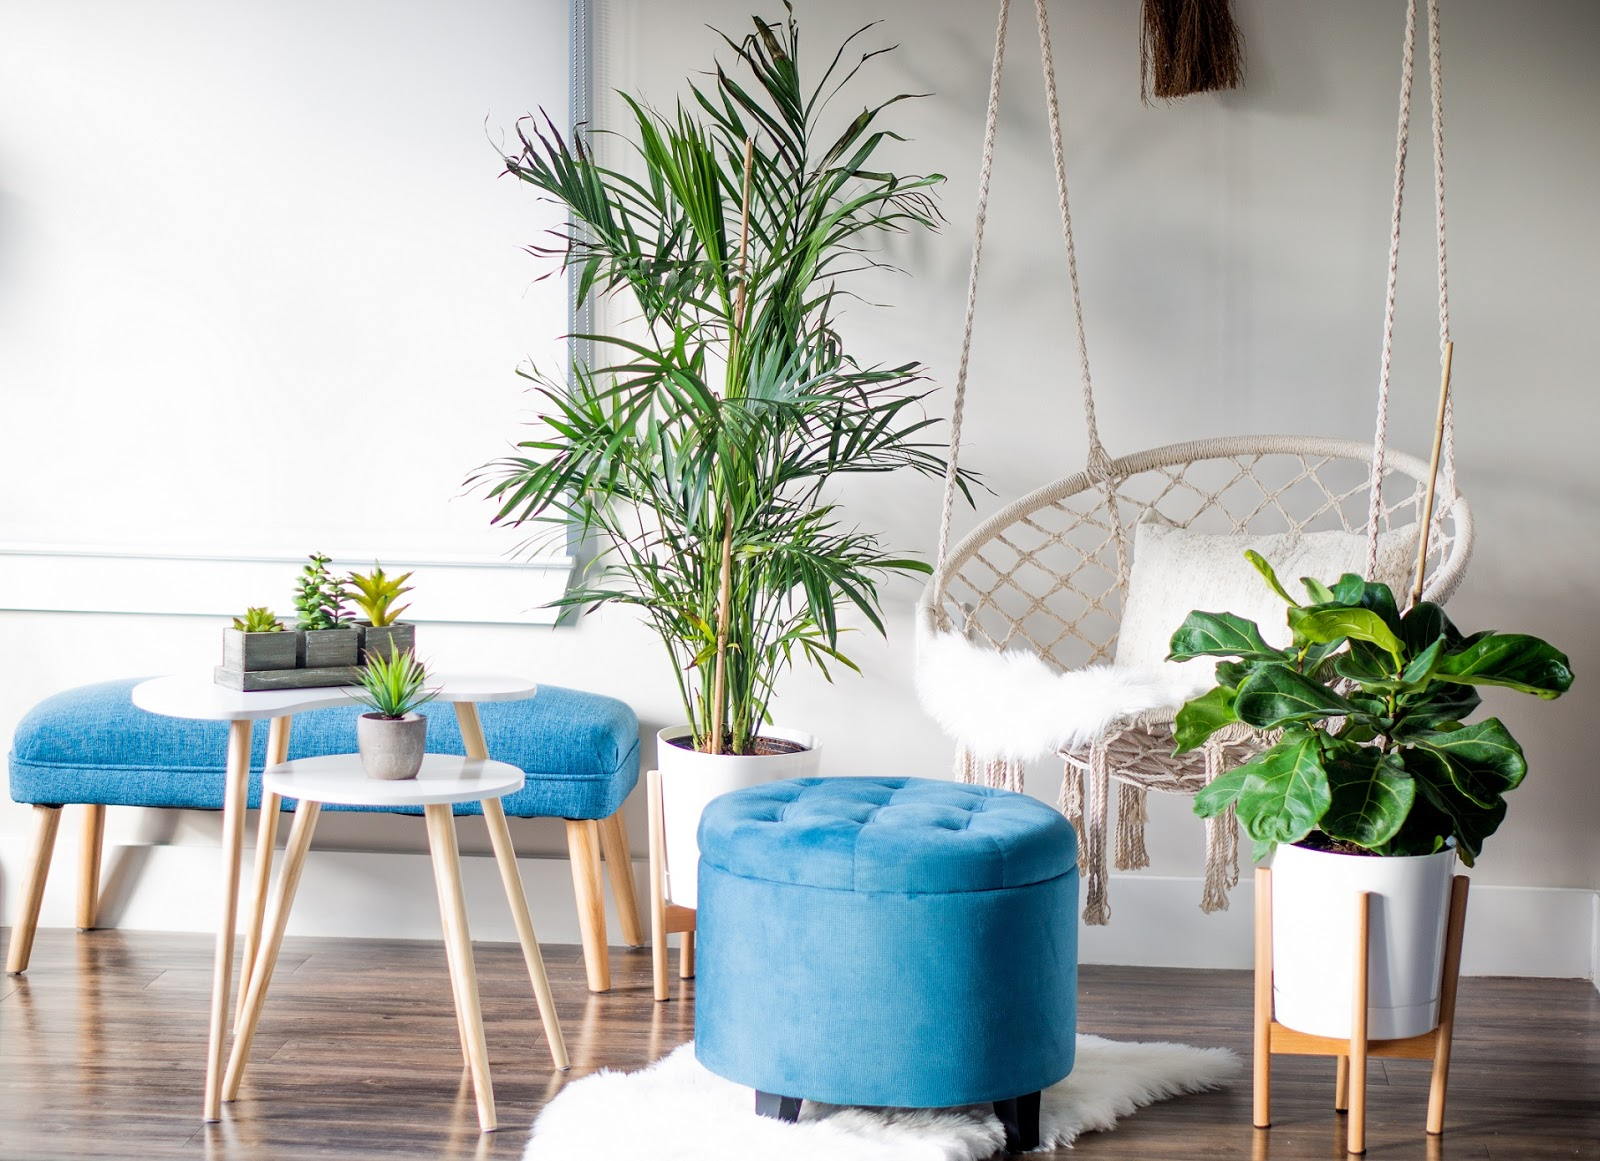 Get Inspired by Plant Home Decor | Oh to Be a Muse